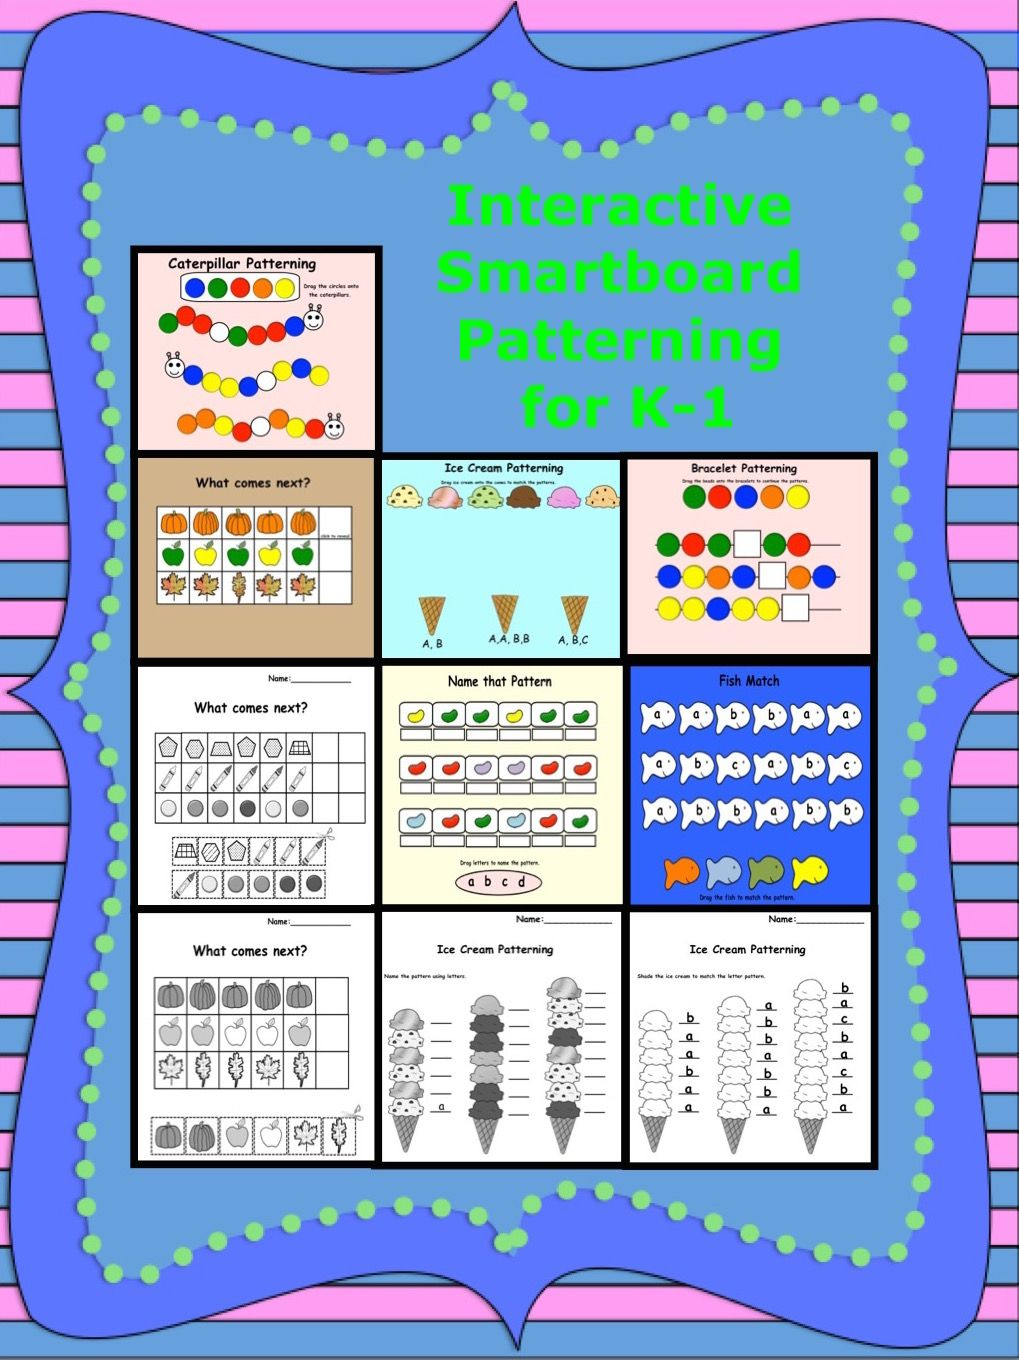 Interactive Smartboard Patterning for K-1 | Math, Math patterns and ...